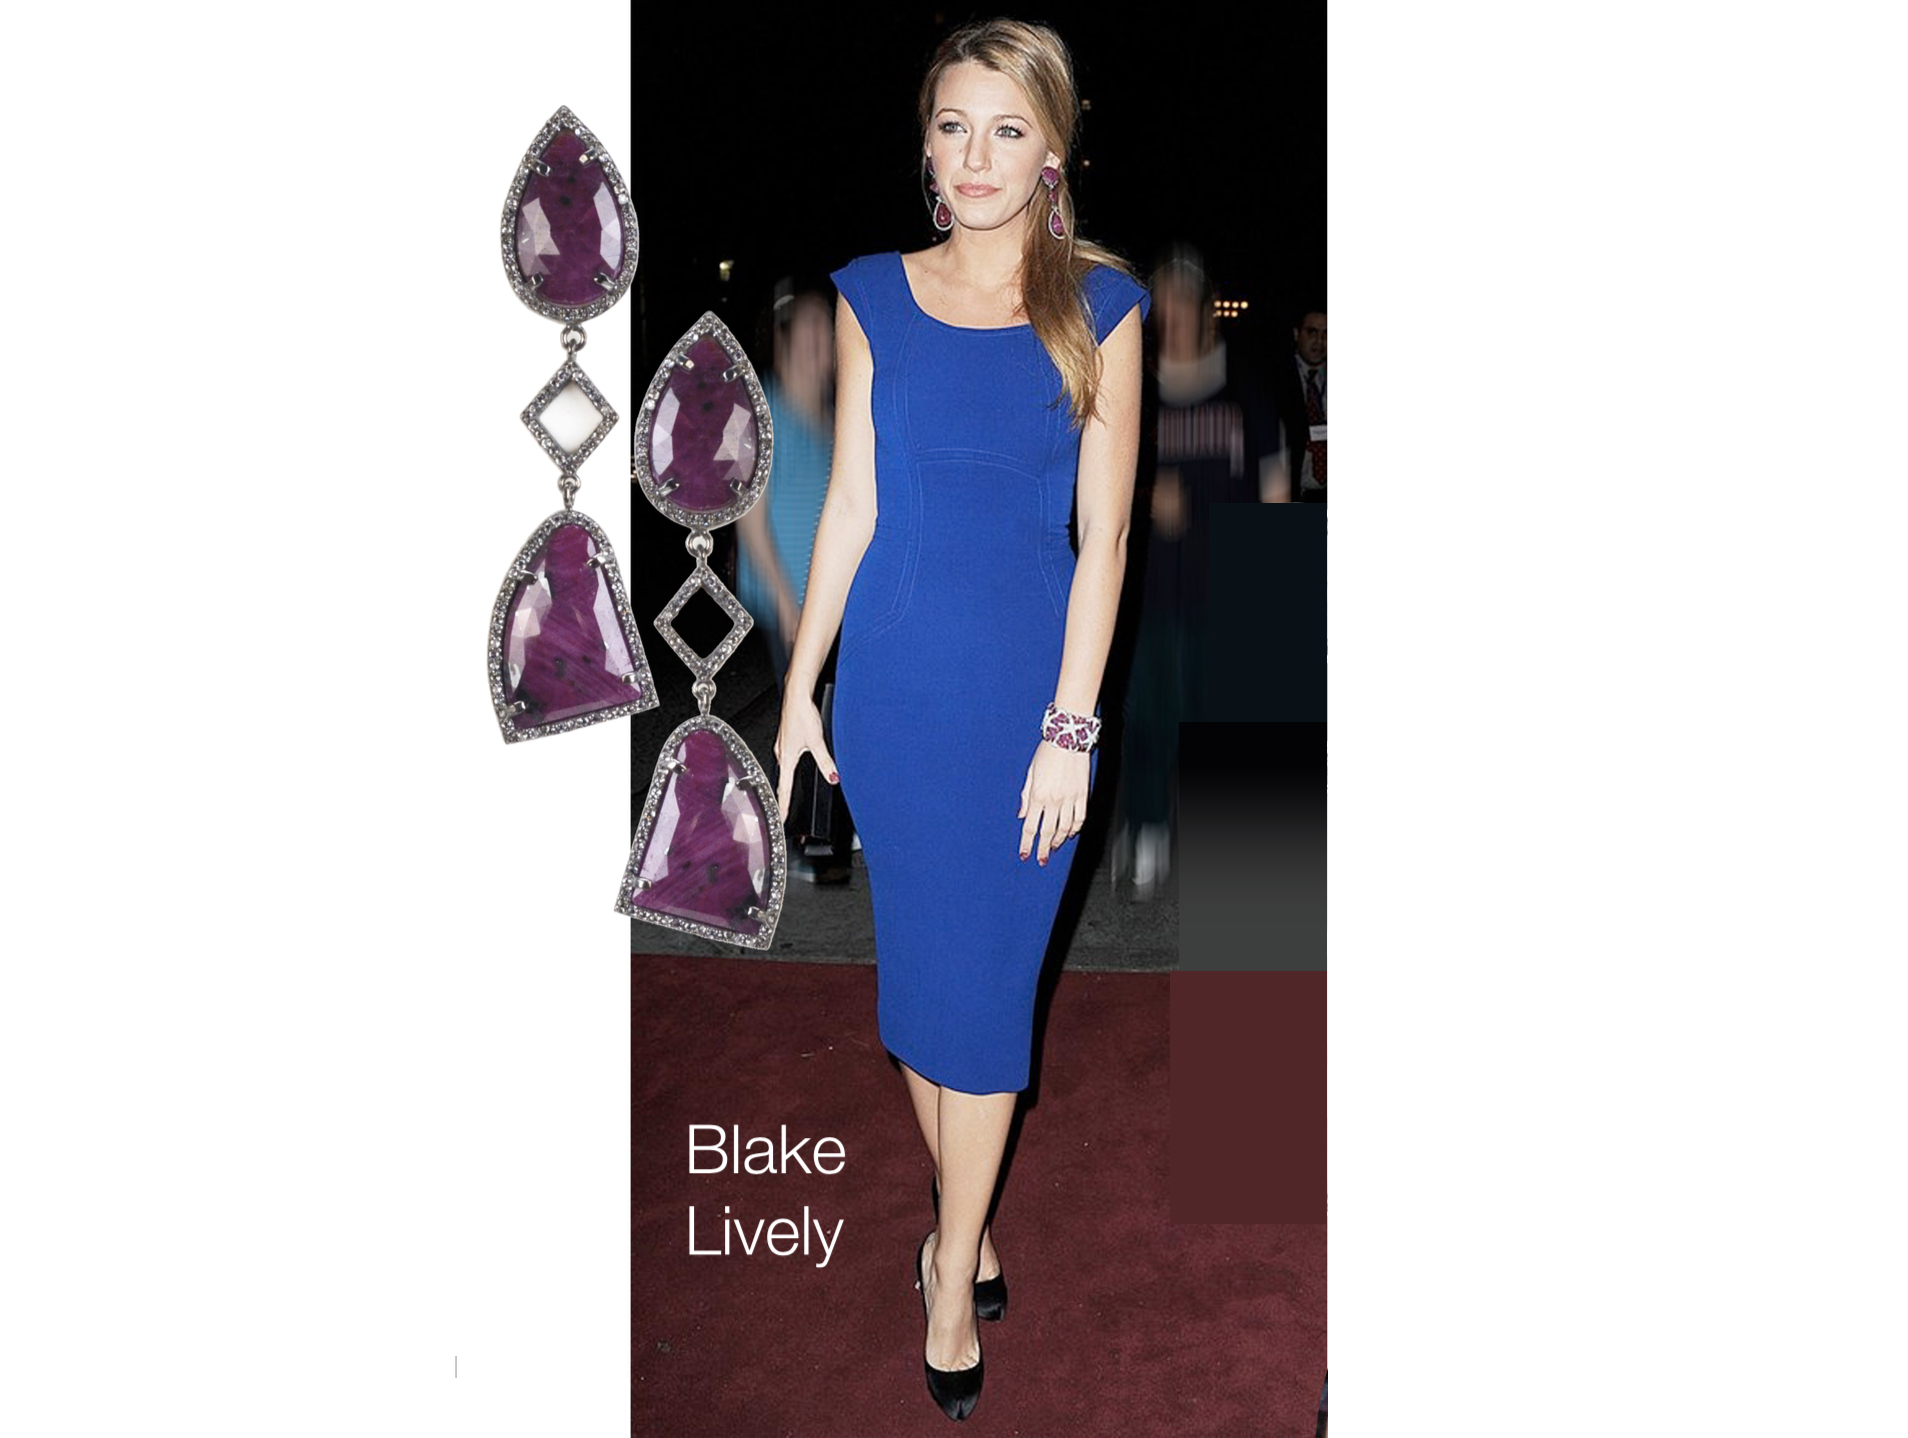 BlakeLively_purp-sapphire-earrings.jpg